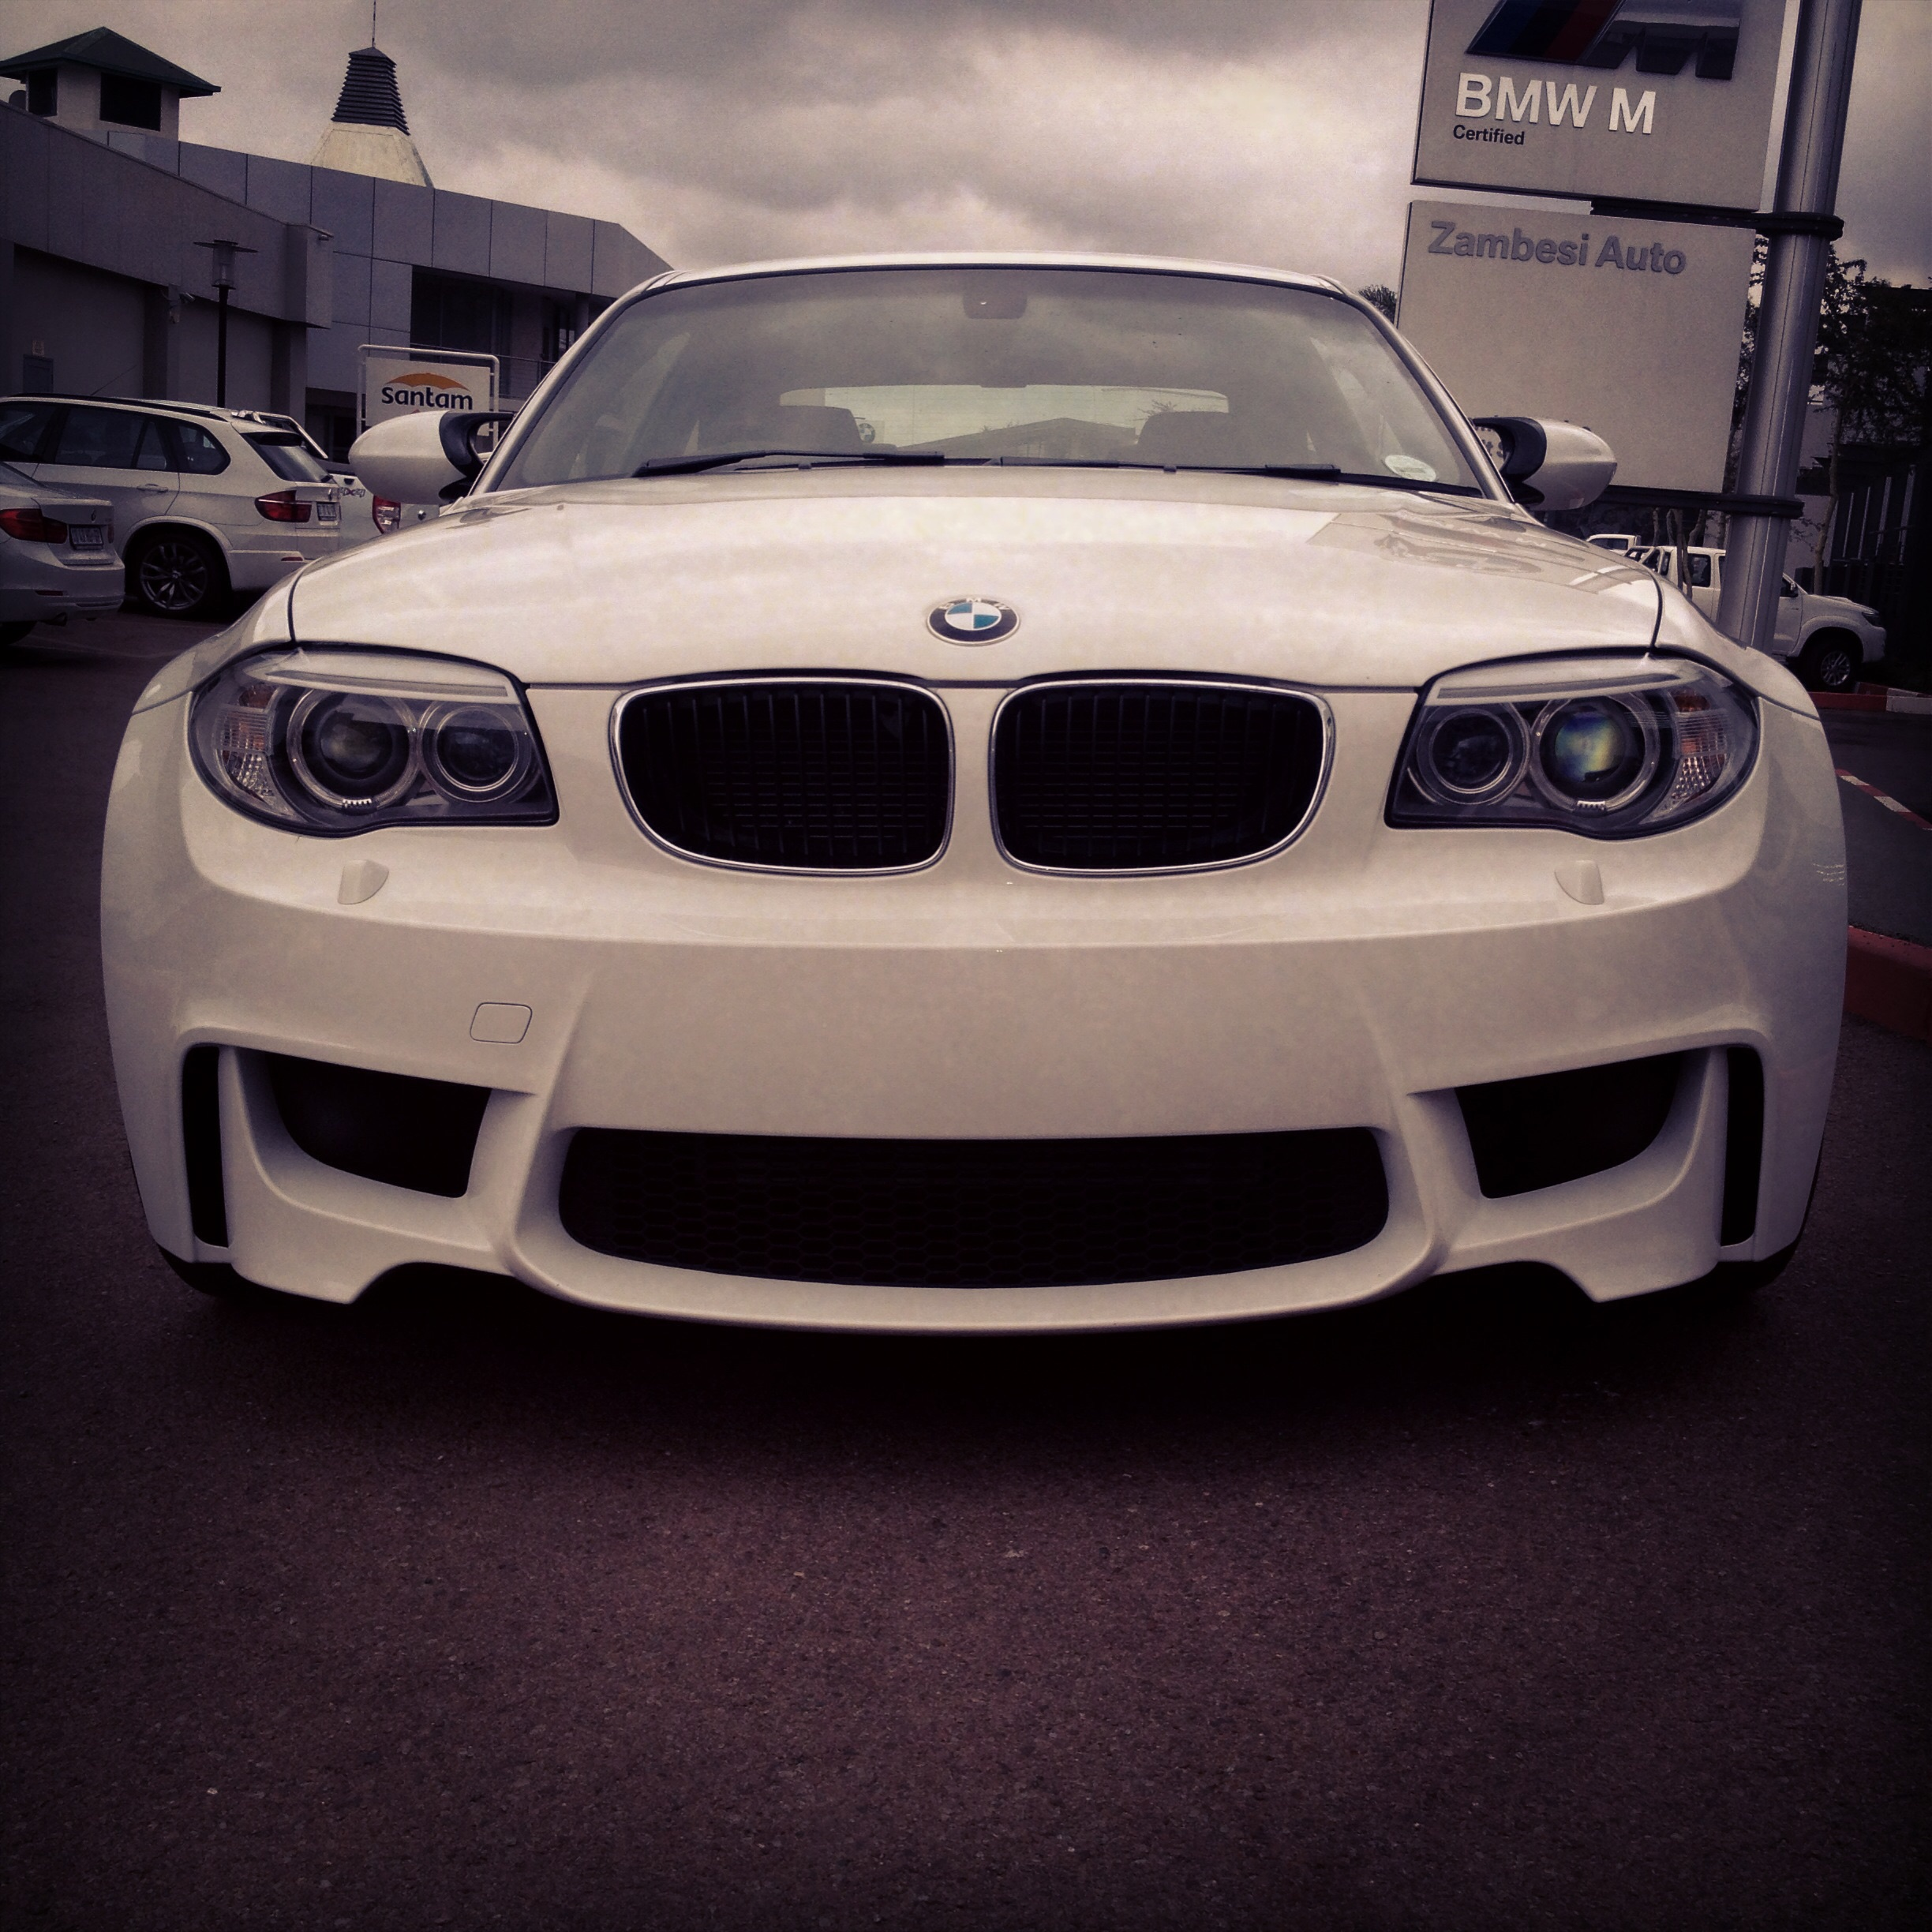 Mean Bmw 1m Coupe Photo Taken At Bmw Zambesi Auto